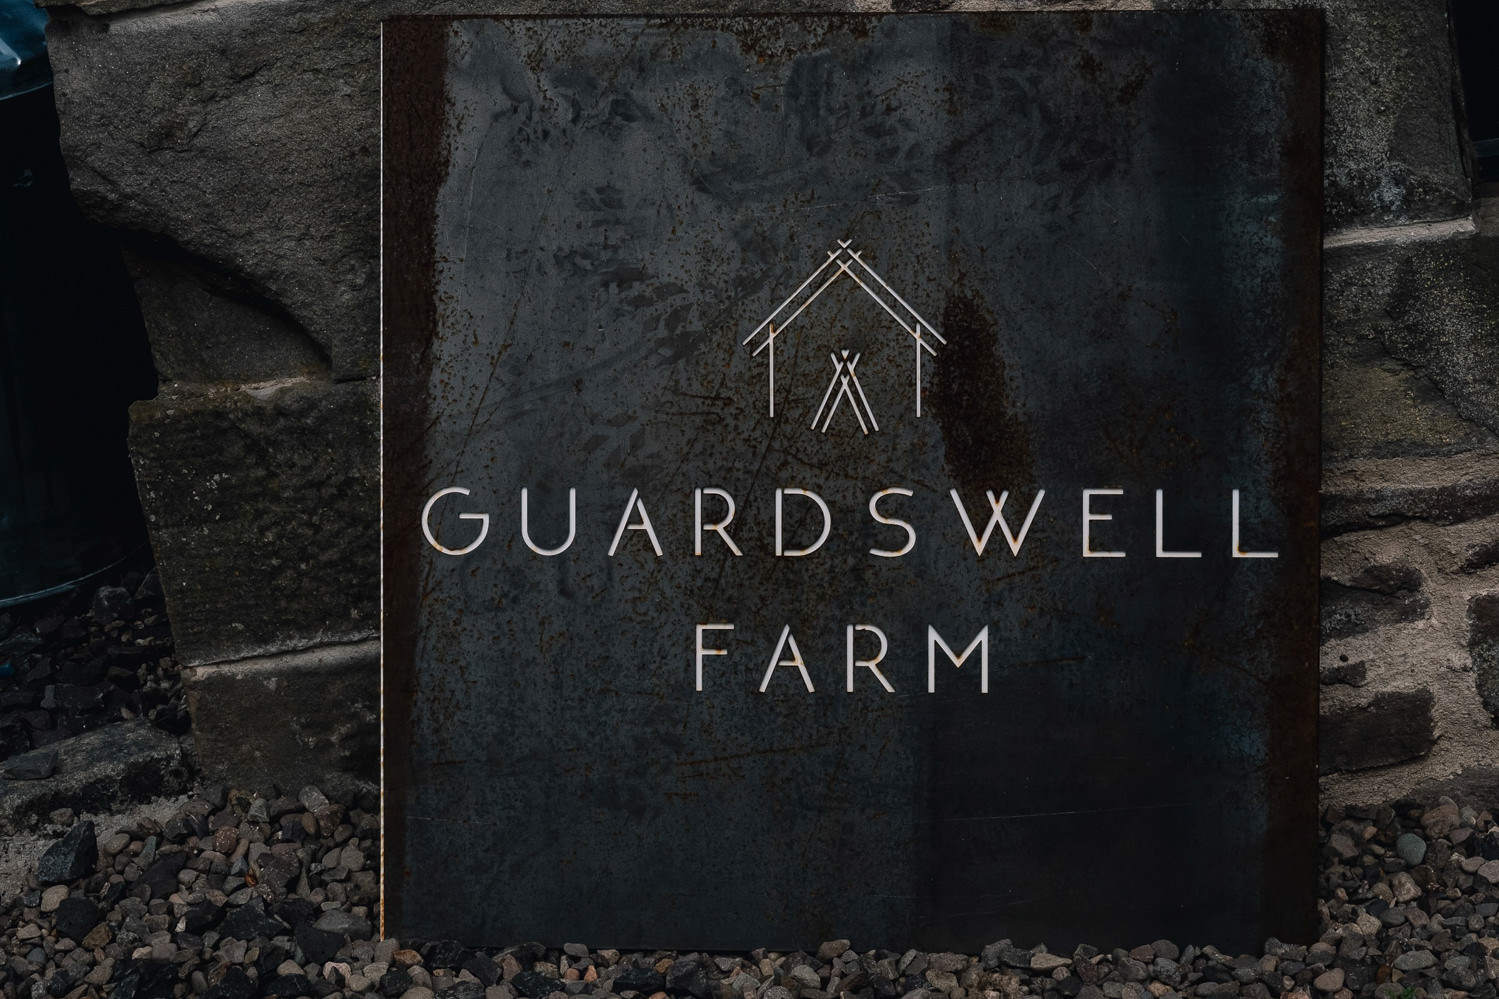 Slate with name and branding logo of Guardswell sits on the ground.